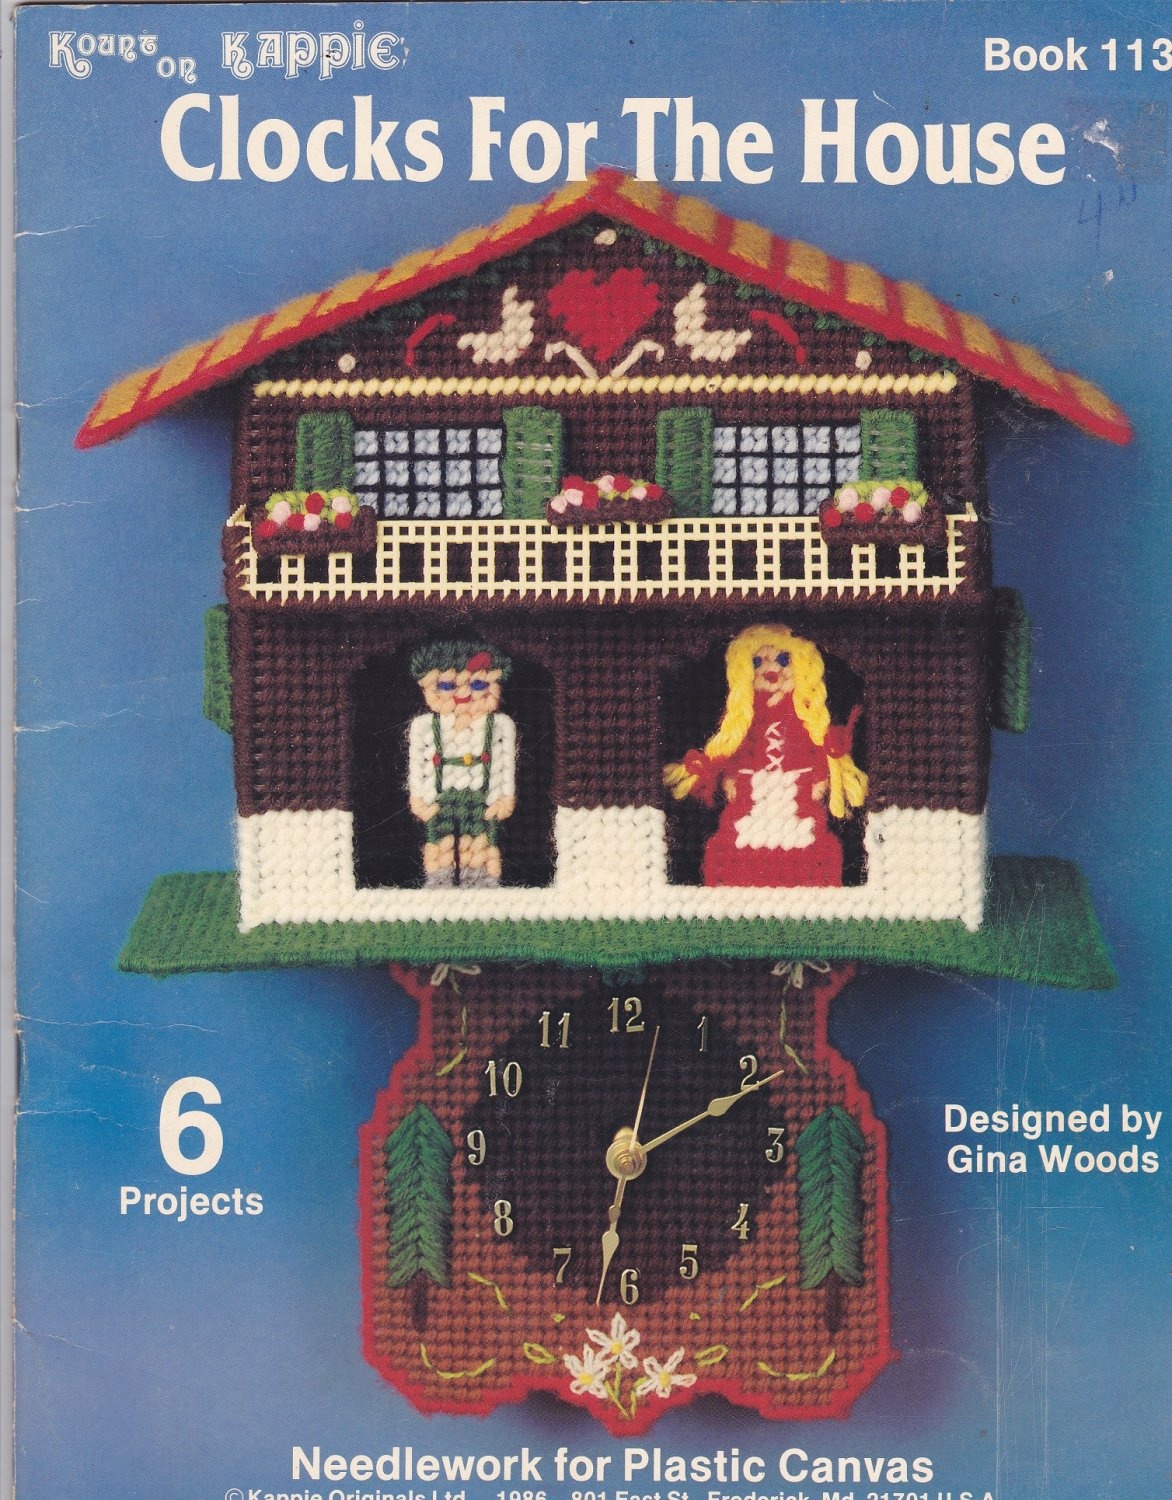 Clocks for the House Plastic Canvas pattern booklet 113 Designer Gina Woods